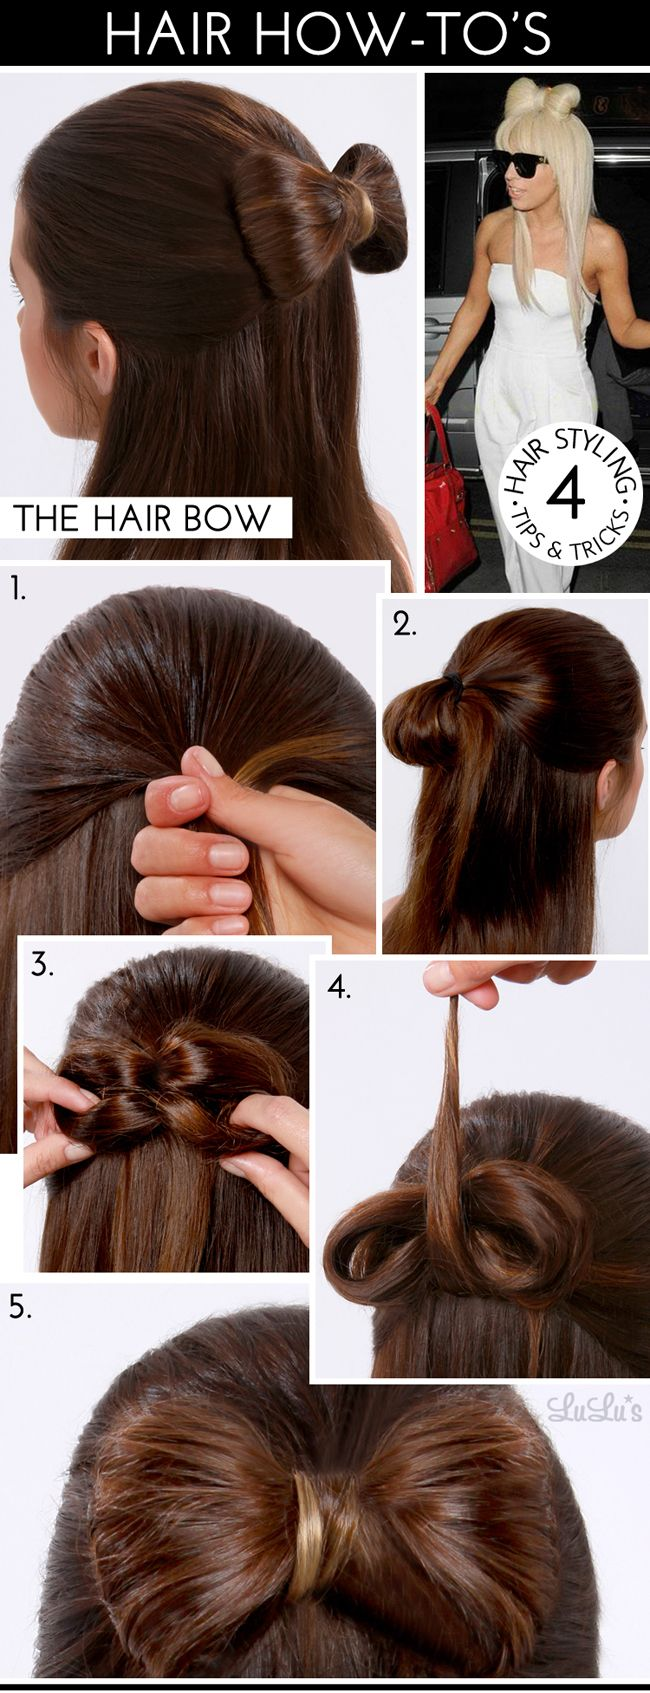 LuLu*s How-To: The oh-so-coveted hair bow-<3 yeah im prolly gonna end up in a not but i'll wing it n see